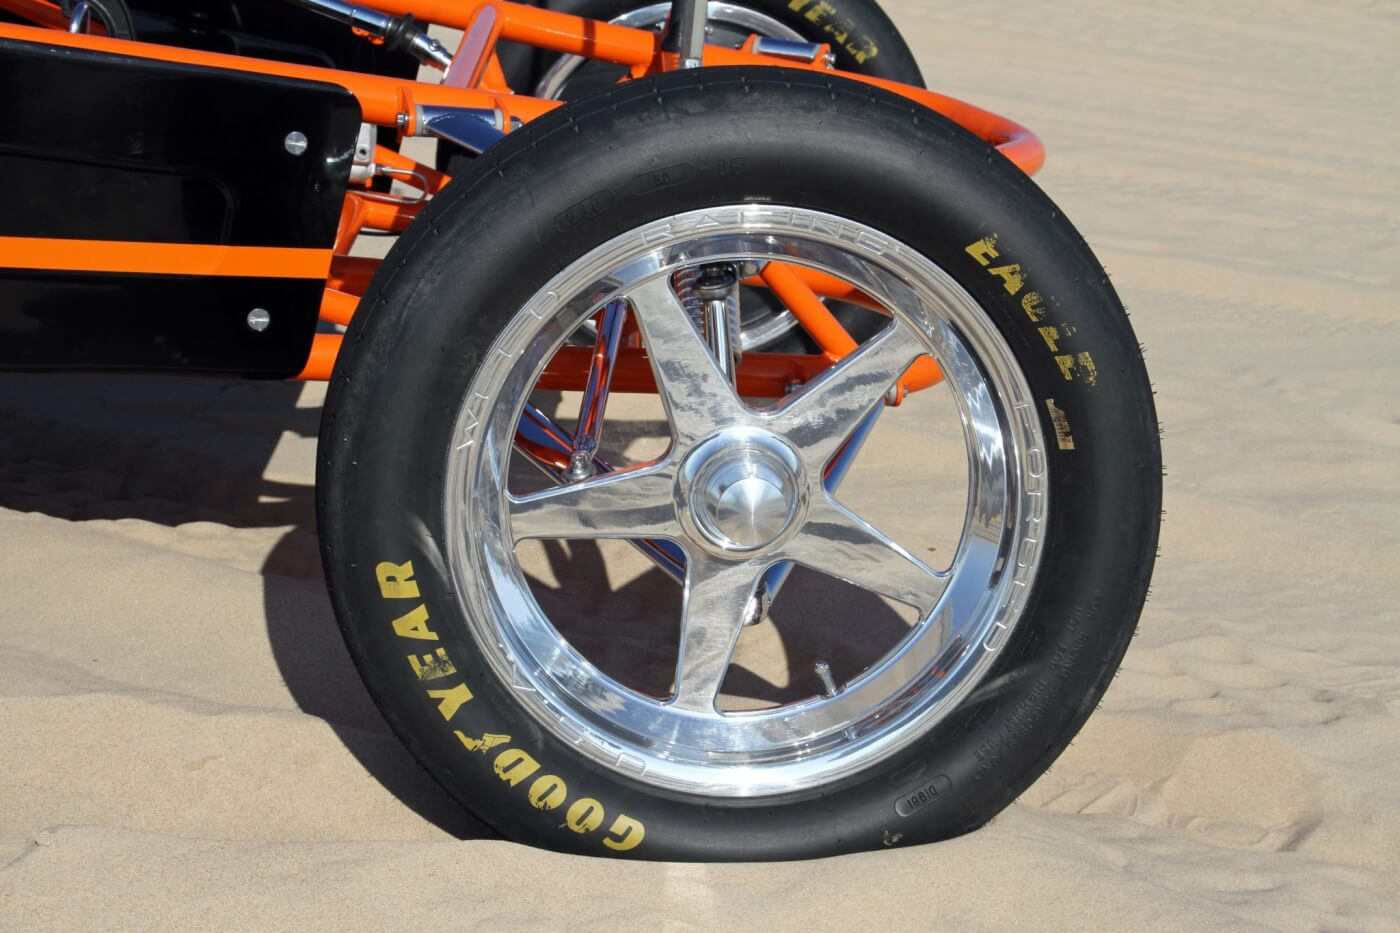 The front tires are a set of Goodyear Eagle drag tires to handle race speeds without an issue; they're wrapped around a set of polished spindle-mount Weld Racing wheels.